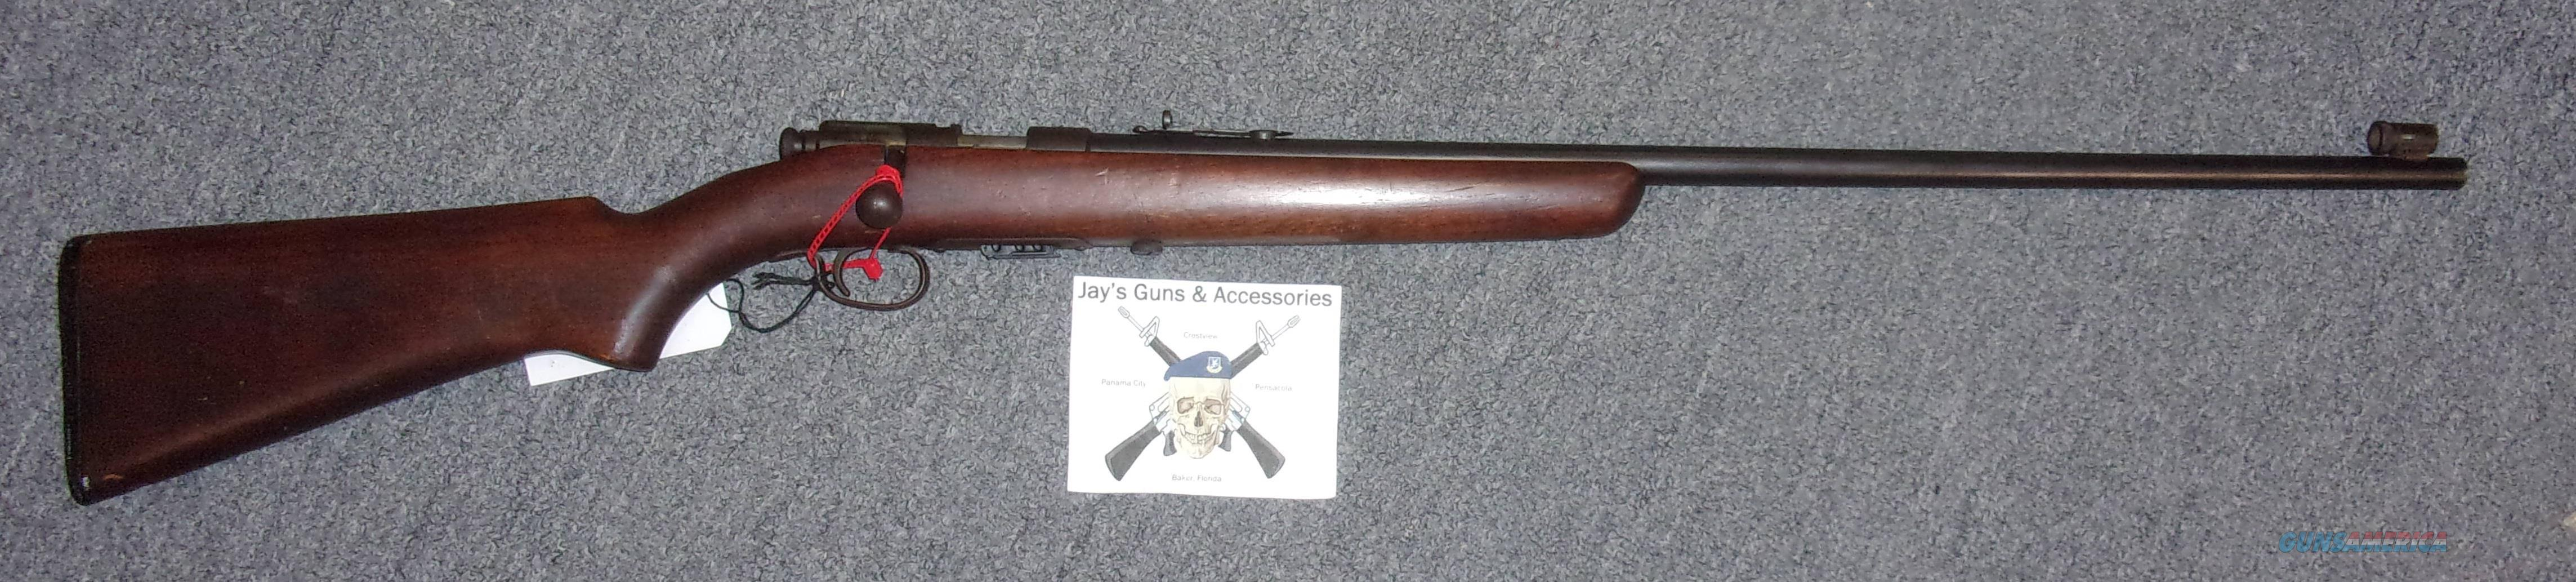 Winchester 69  Guns > Rifles > Winchester Rifles - Modern Bolt/Auto/Single > .22 Boys Rifles